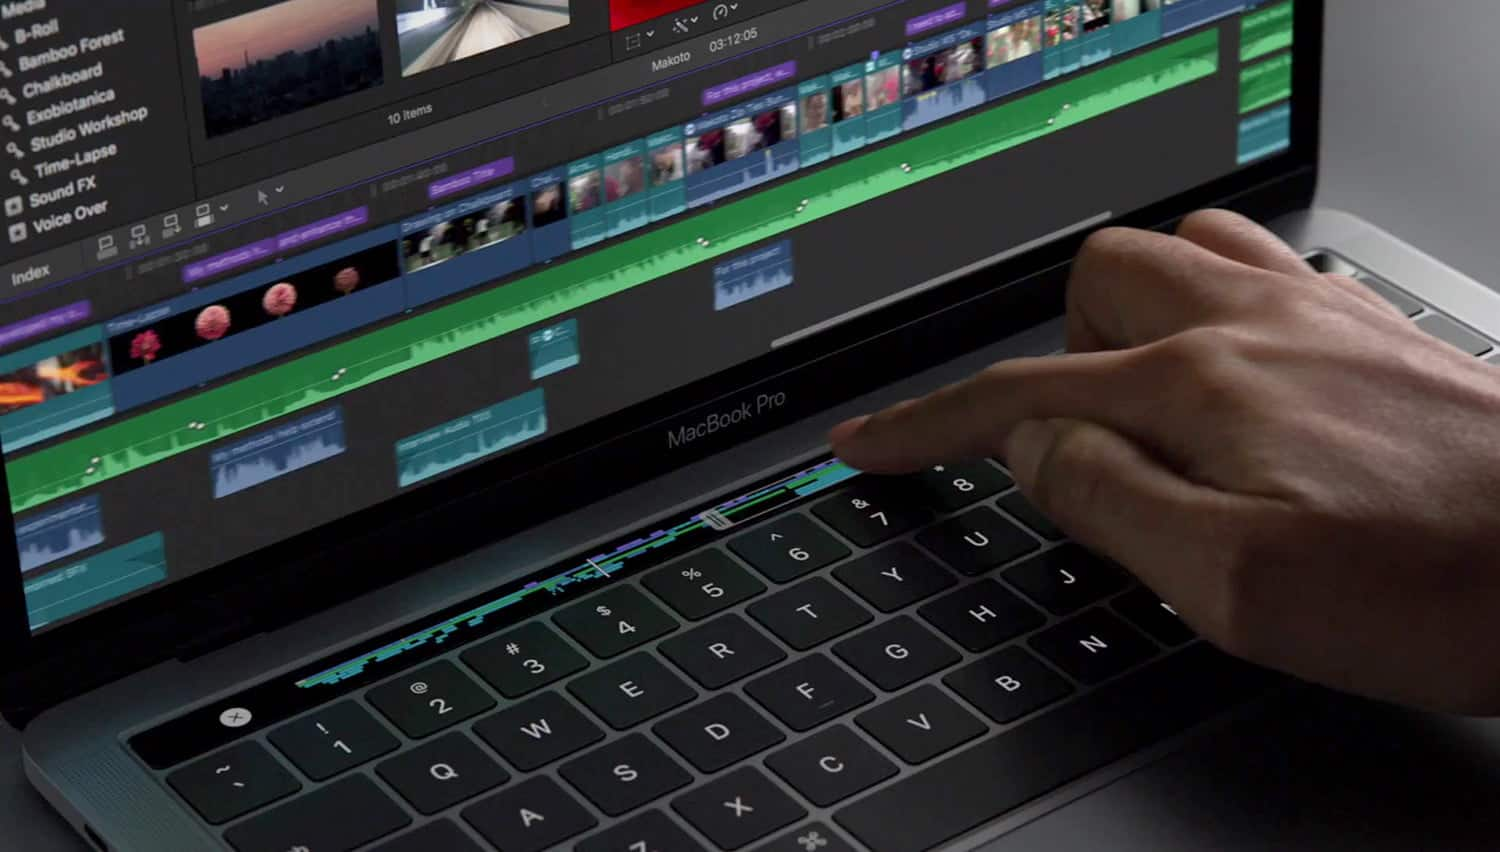 Apple should ditch the TouchBar on MacBook Pro